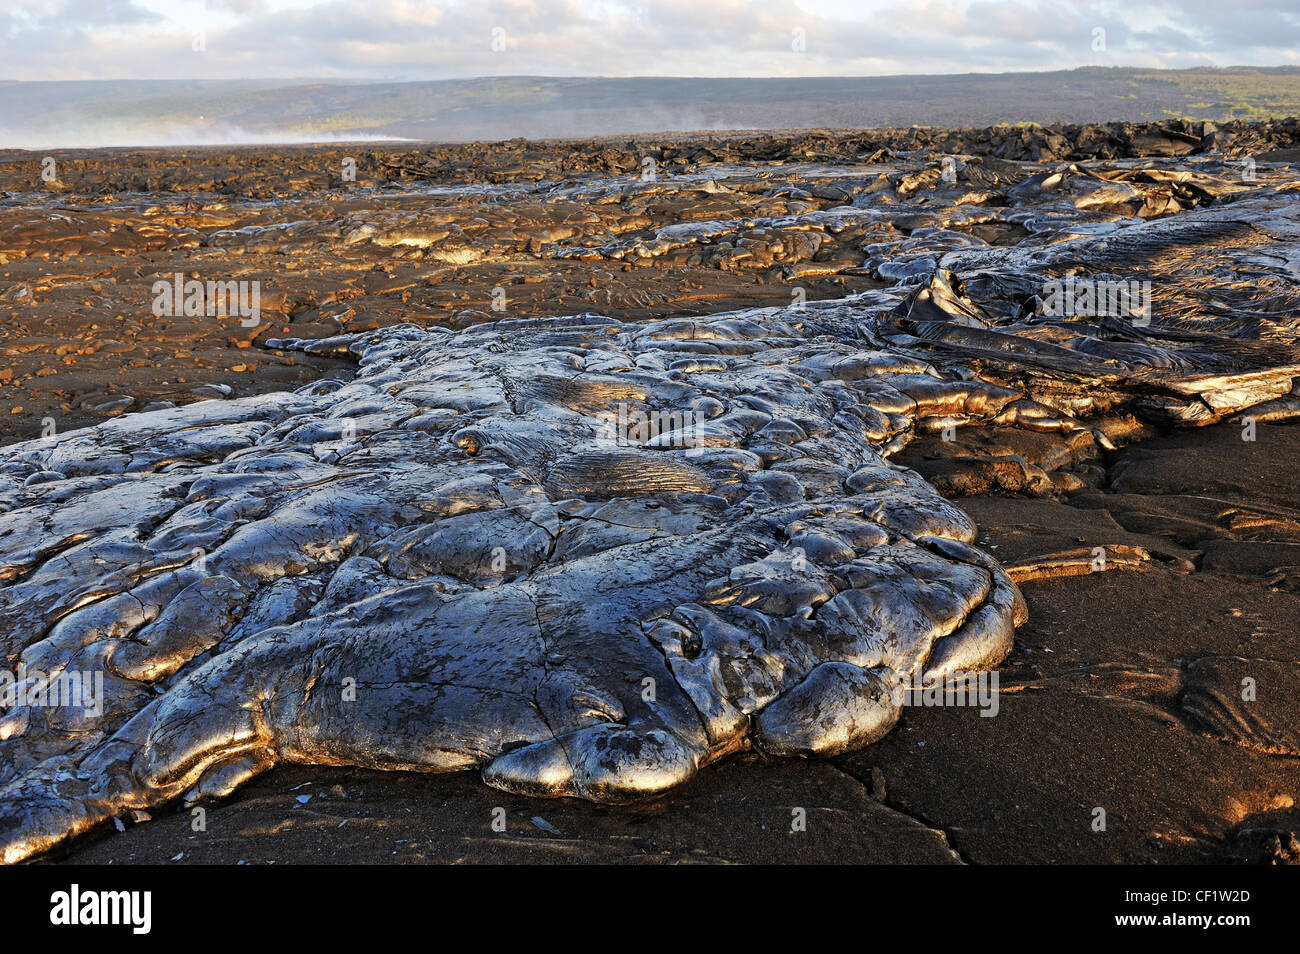 Cooled pahoehoe lava flow, Kilauea Volcano, Big Island, Hawaii Volcanoes National Park, USA - Stock Image